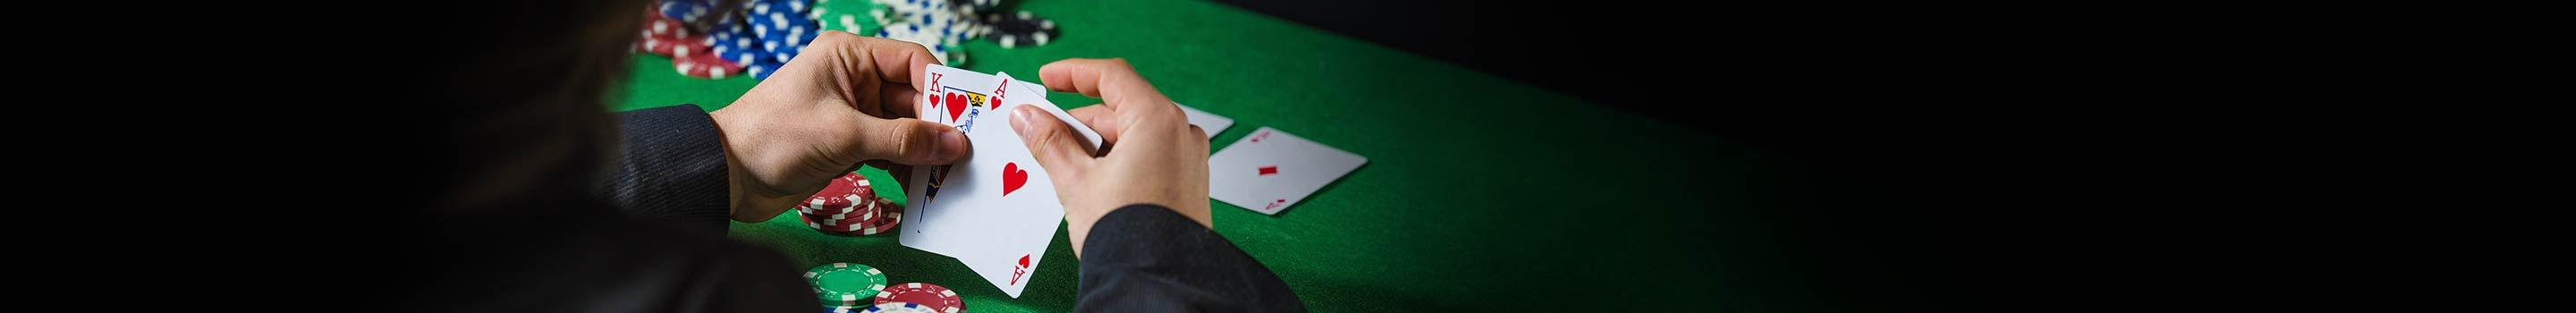 Alternative Blackjack strategies